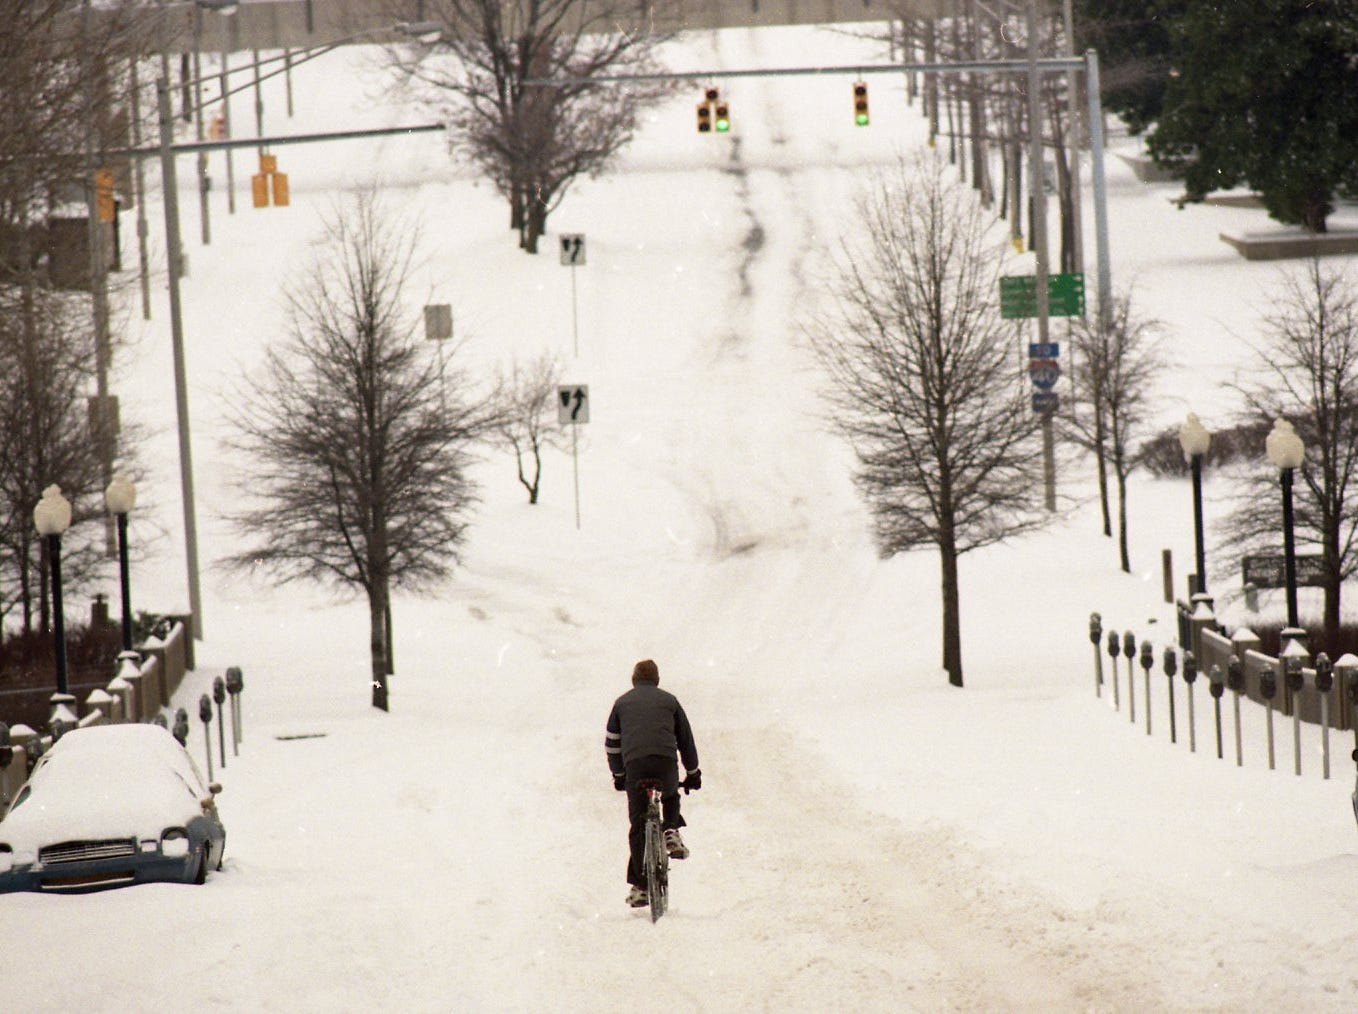 Al Brooks, who had the day off from his job, peddles his bike into a snowy landscapes on Church Ave. in February 1996. Brooks is a veteran of many winters in his hometown of Rockford, Ill., and expressed amazement that snow would close down on Knoxville.